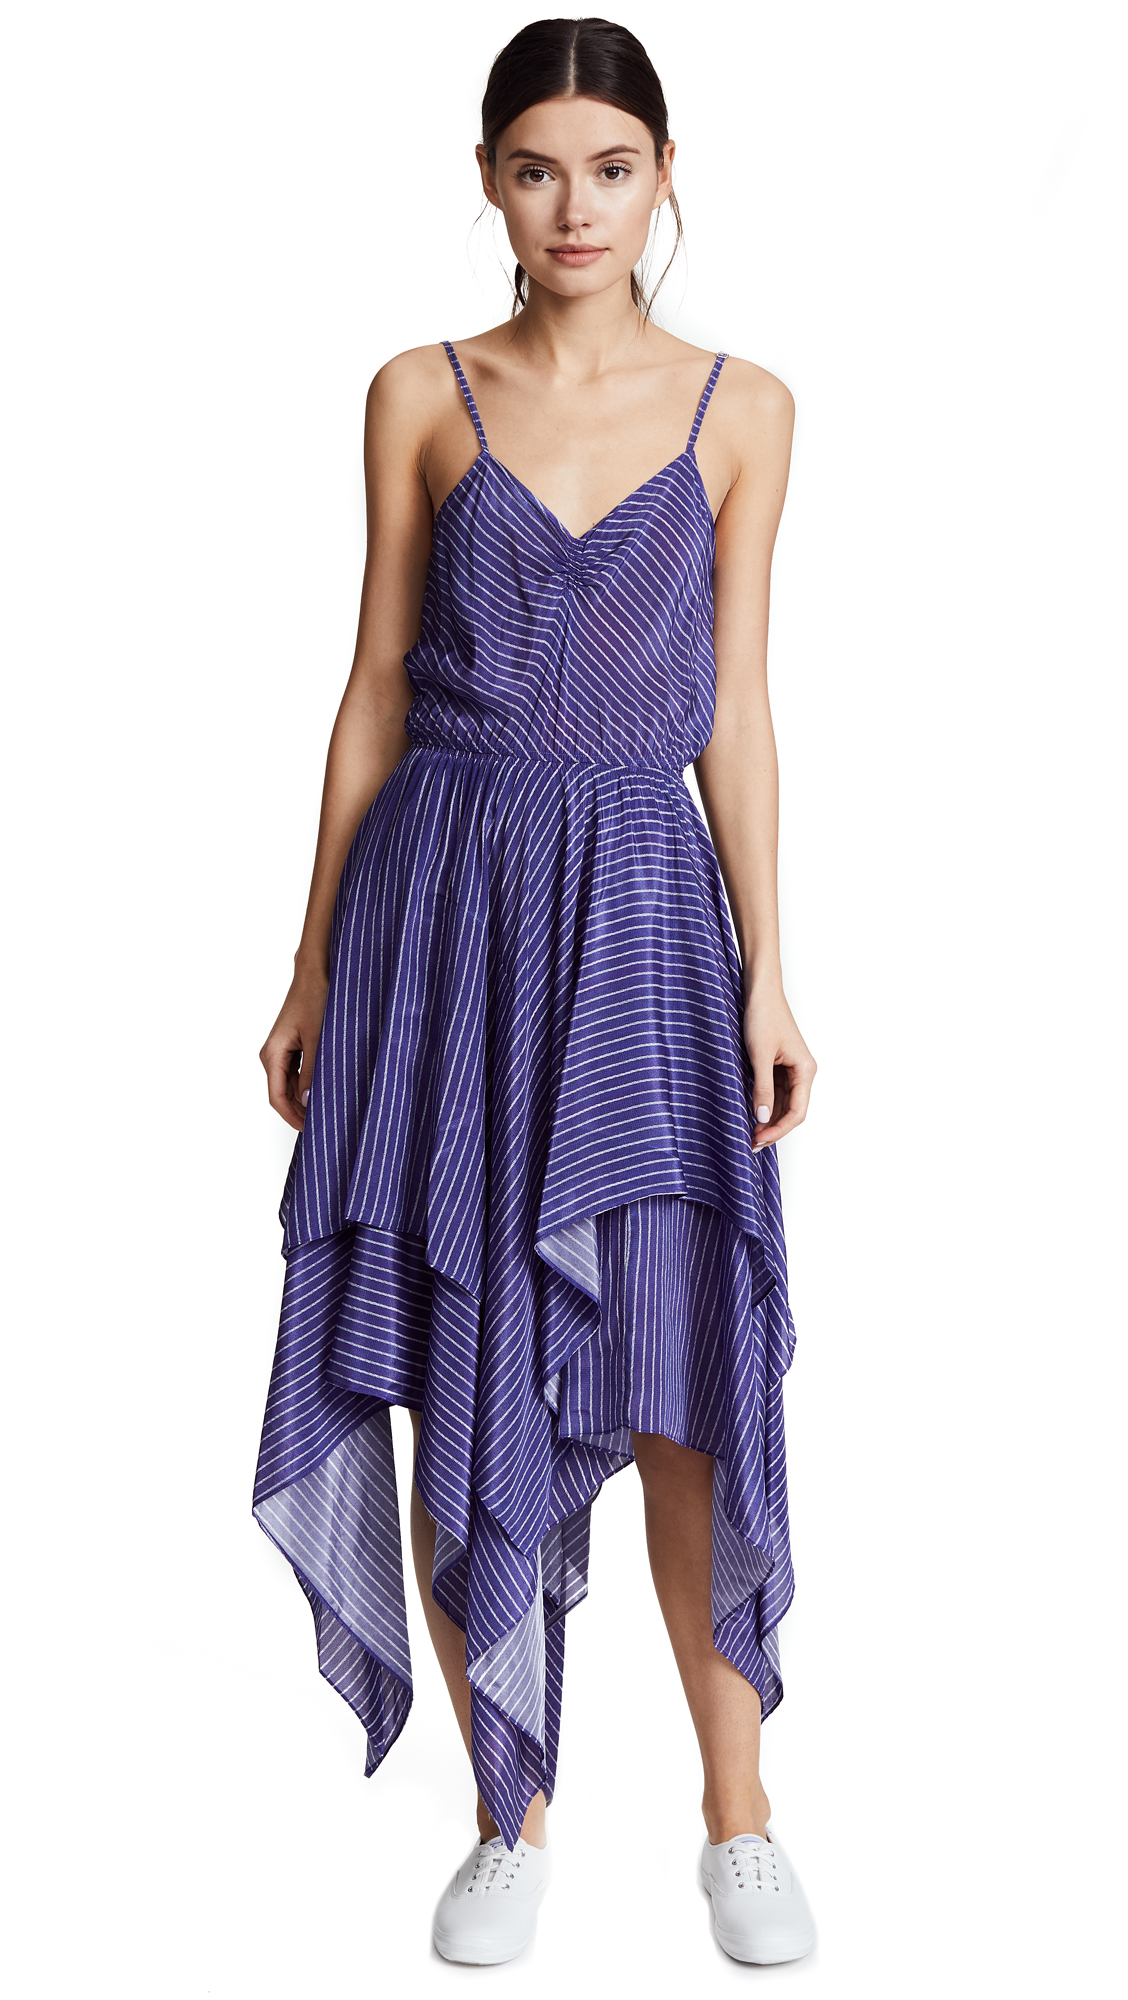 Preen By Thornton Bregazzi Preen Line Myla Striped Dress